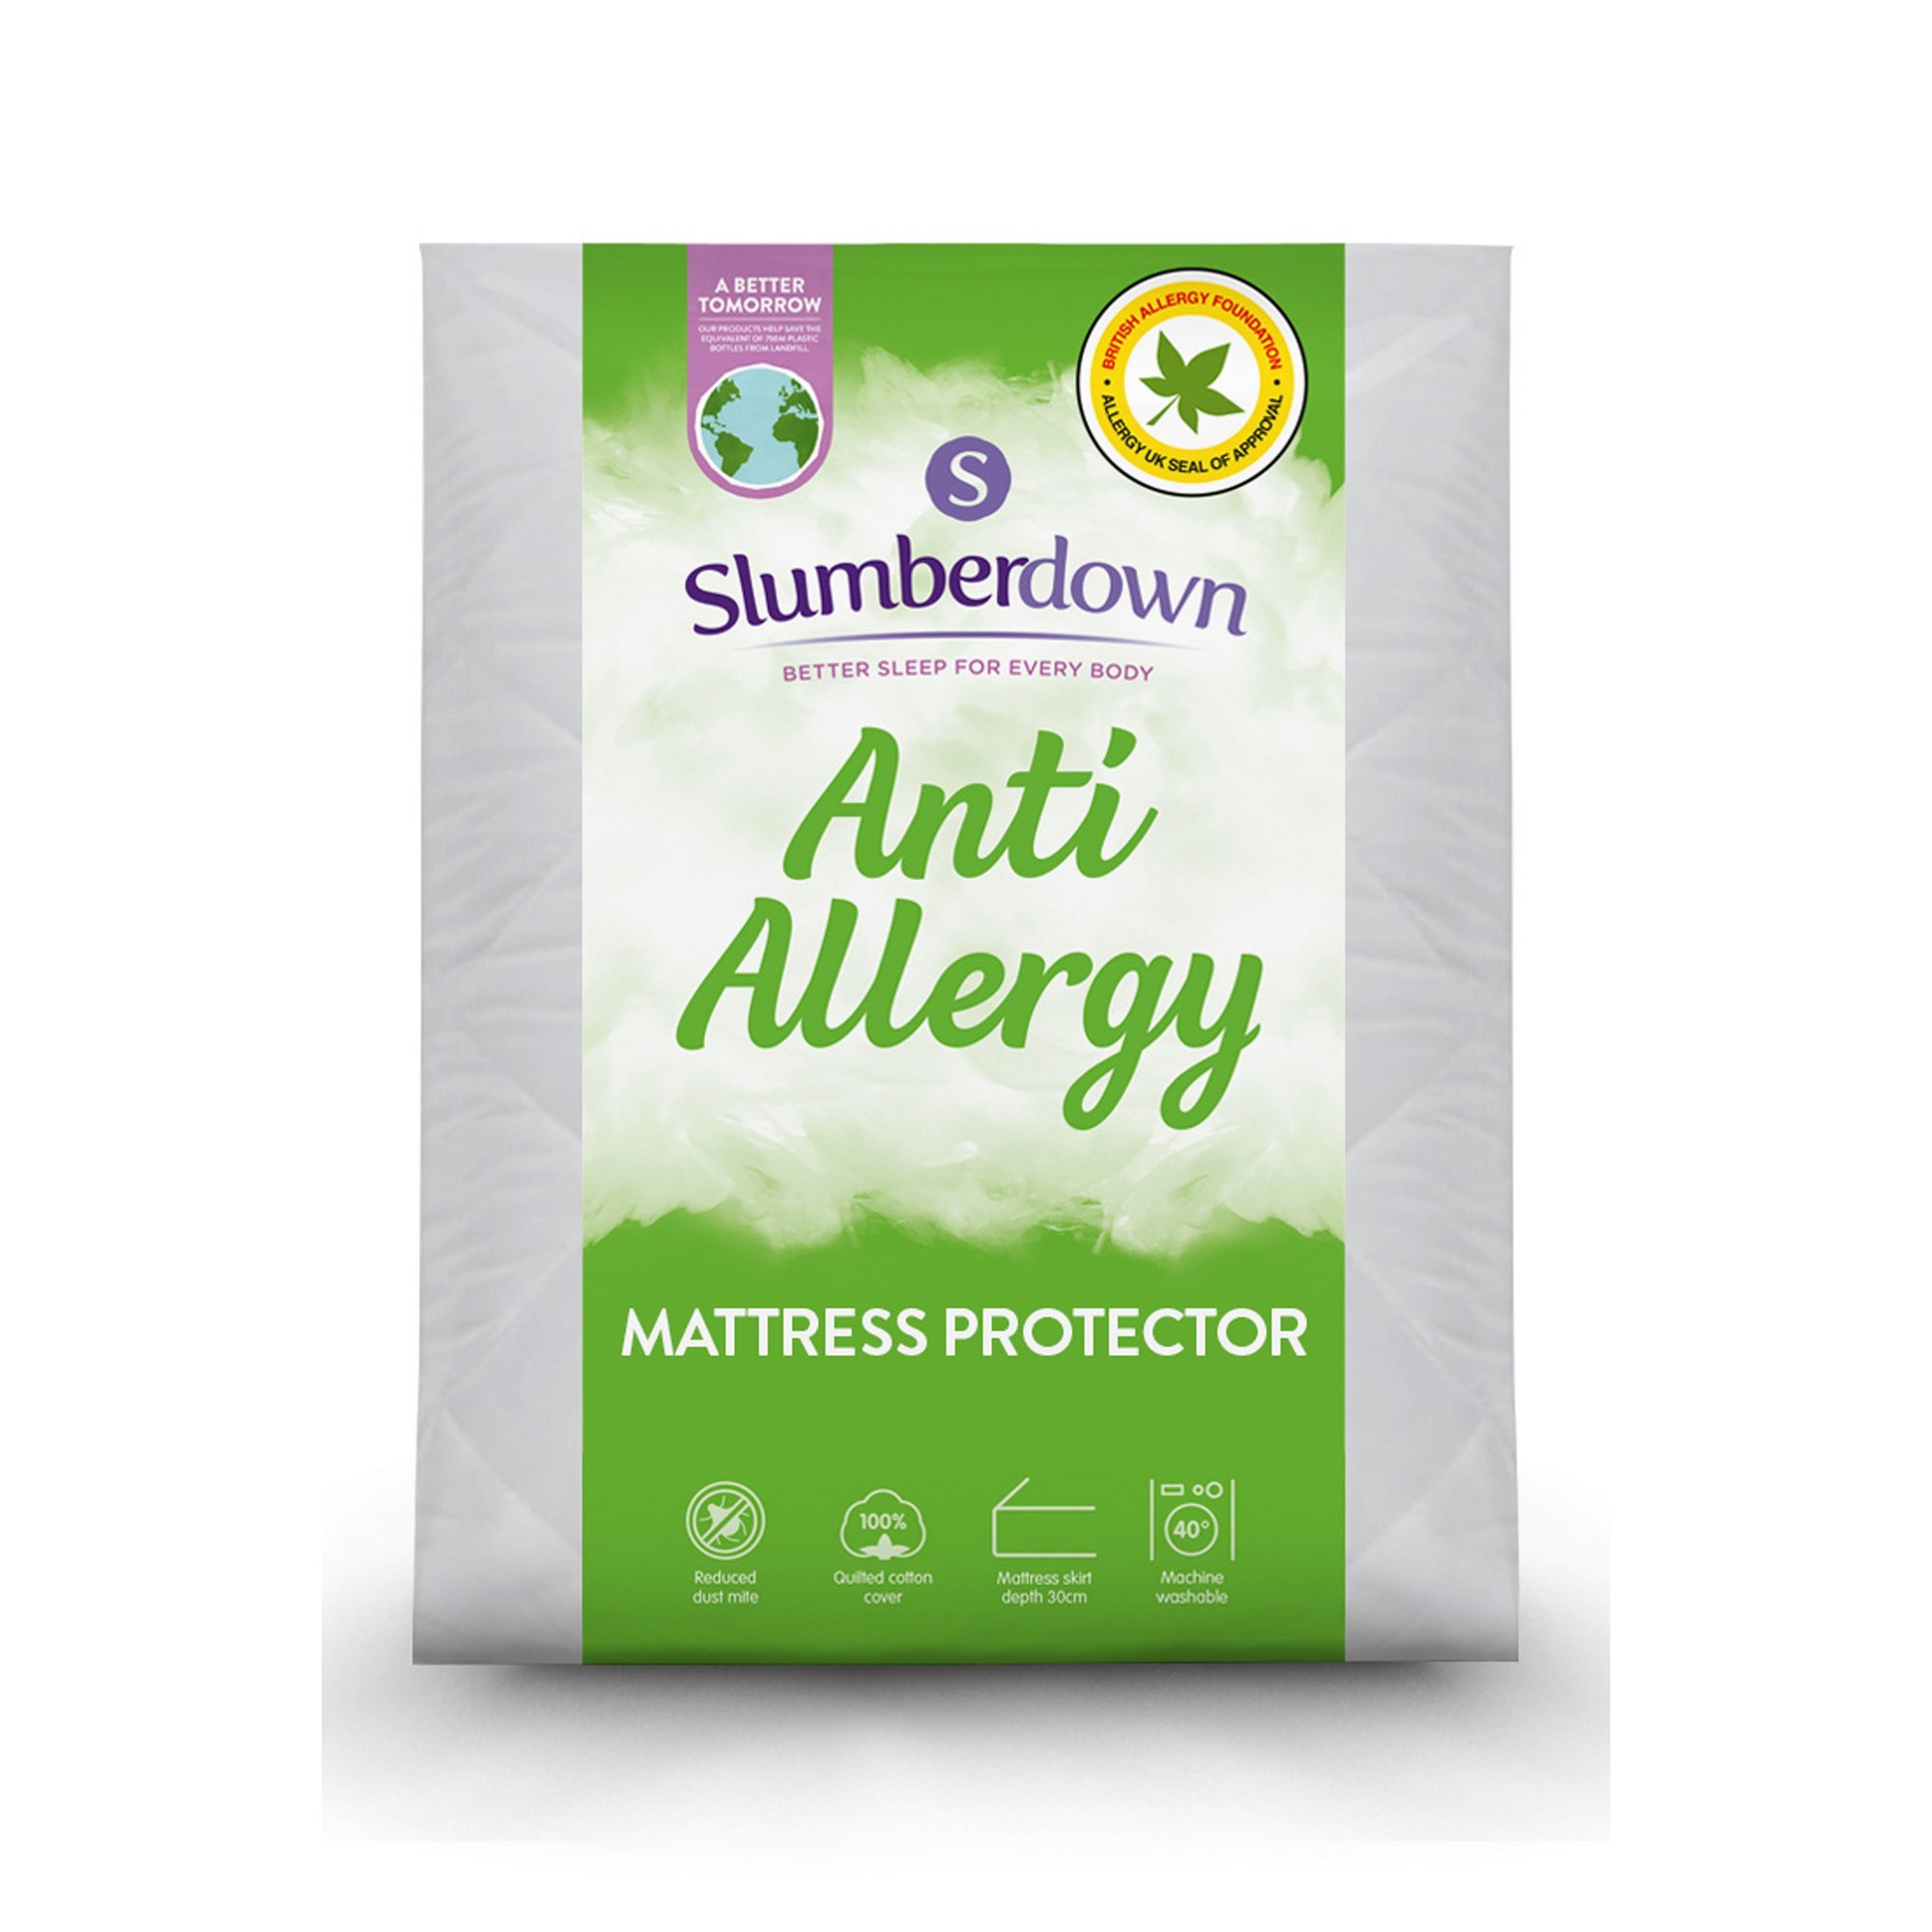 Image of Anti Allergy Mattress Protector